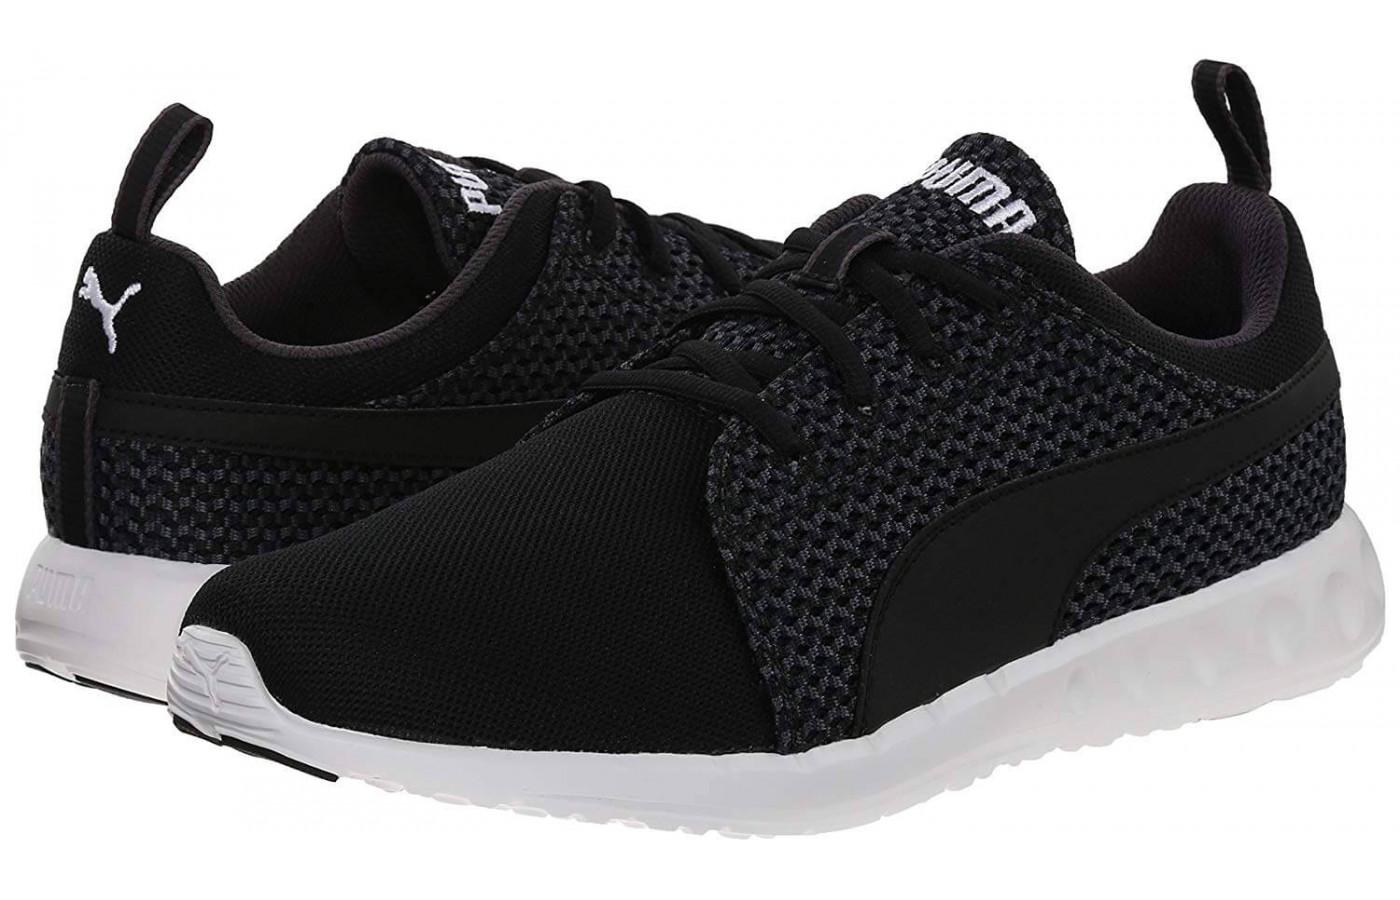 The Puma Carson Runner Knit is a stylish fashion sneaker